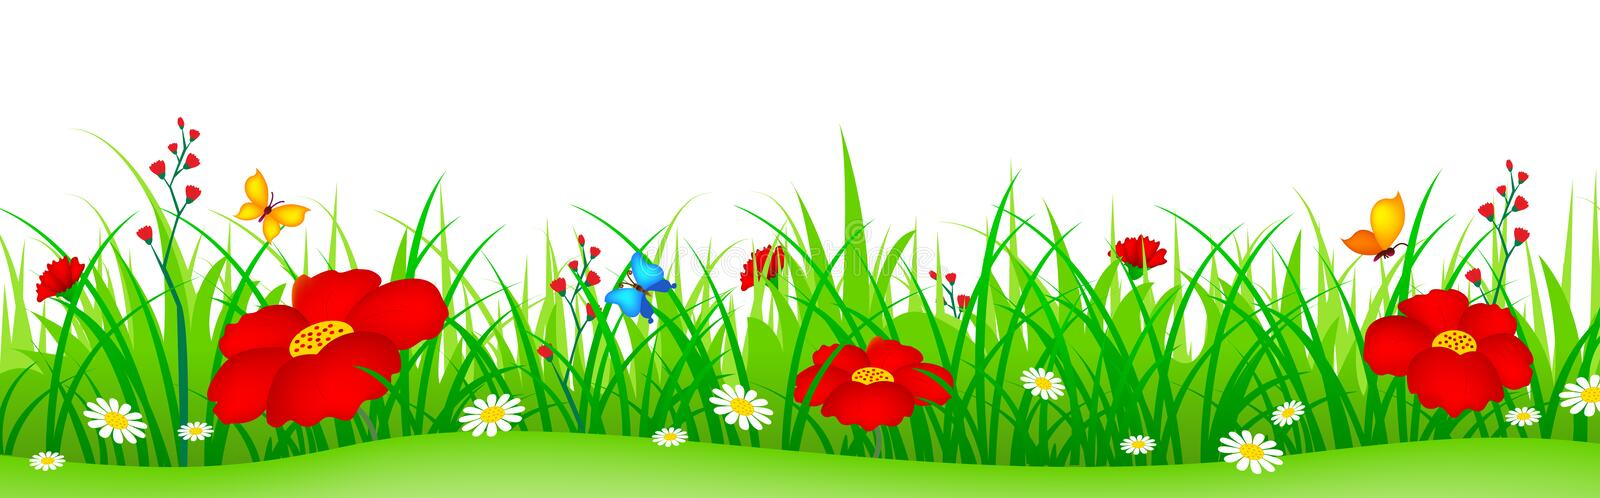 Spring flowers and grass header stock illustration